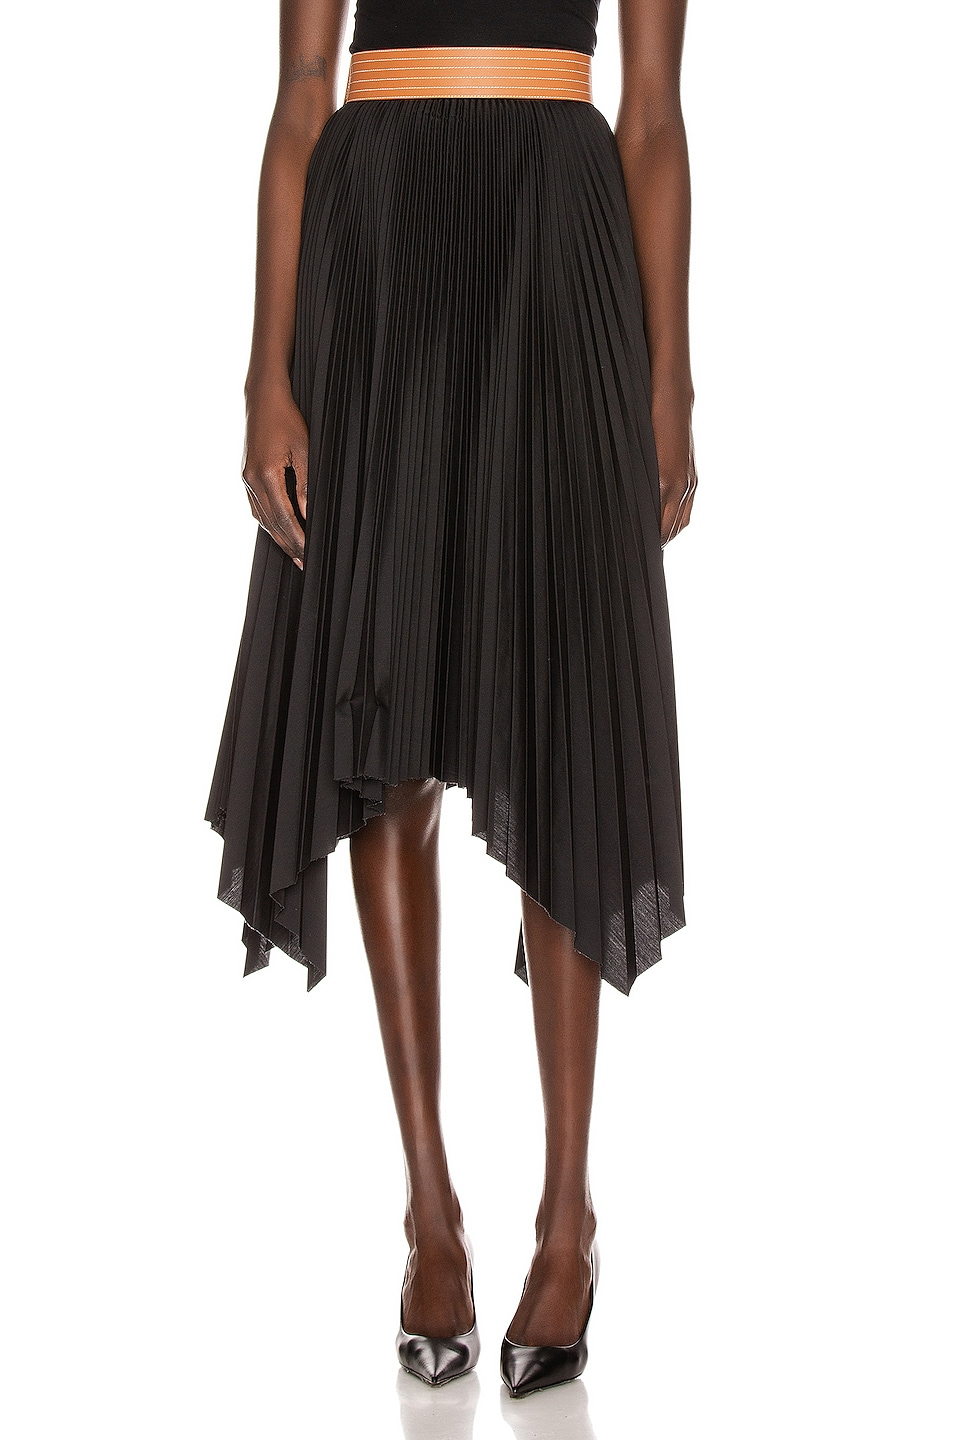 Image 1 of Loewe Pleated Skirt in Black & Tan